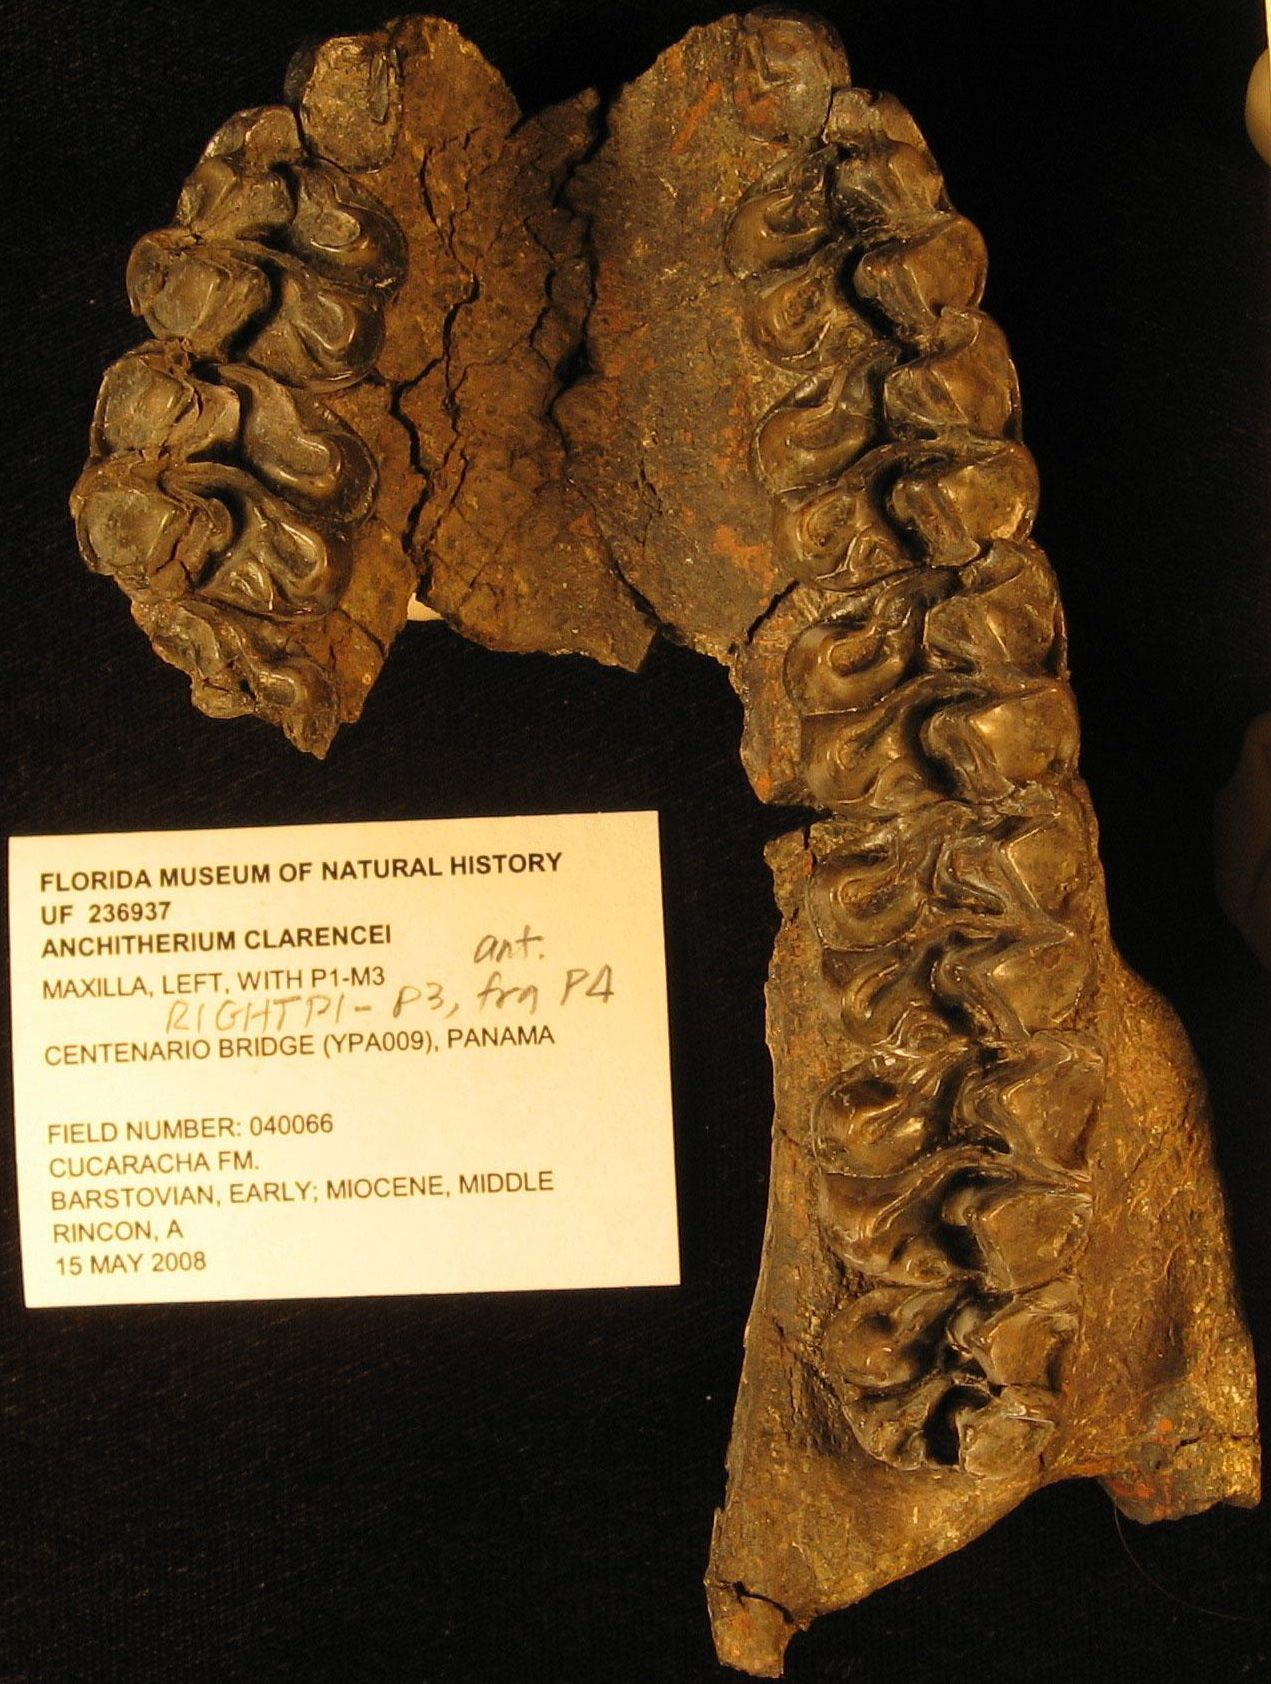 Teeth belonging to the three-toed browsing horse were unearthed in a Panama Canal widening site. Proof that the horse's range expanded from South Dakota to Panama 15-to-18 million years ago. (Courtesy of STRI.)